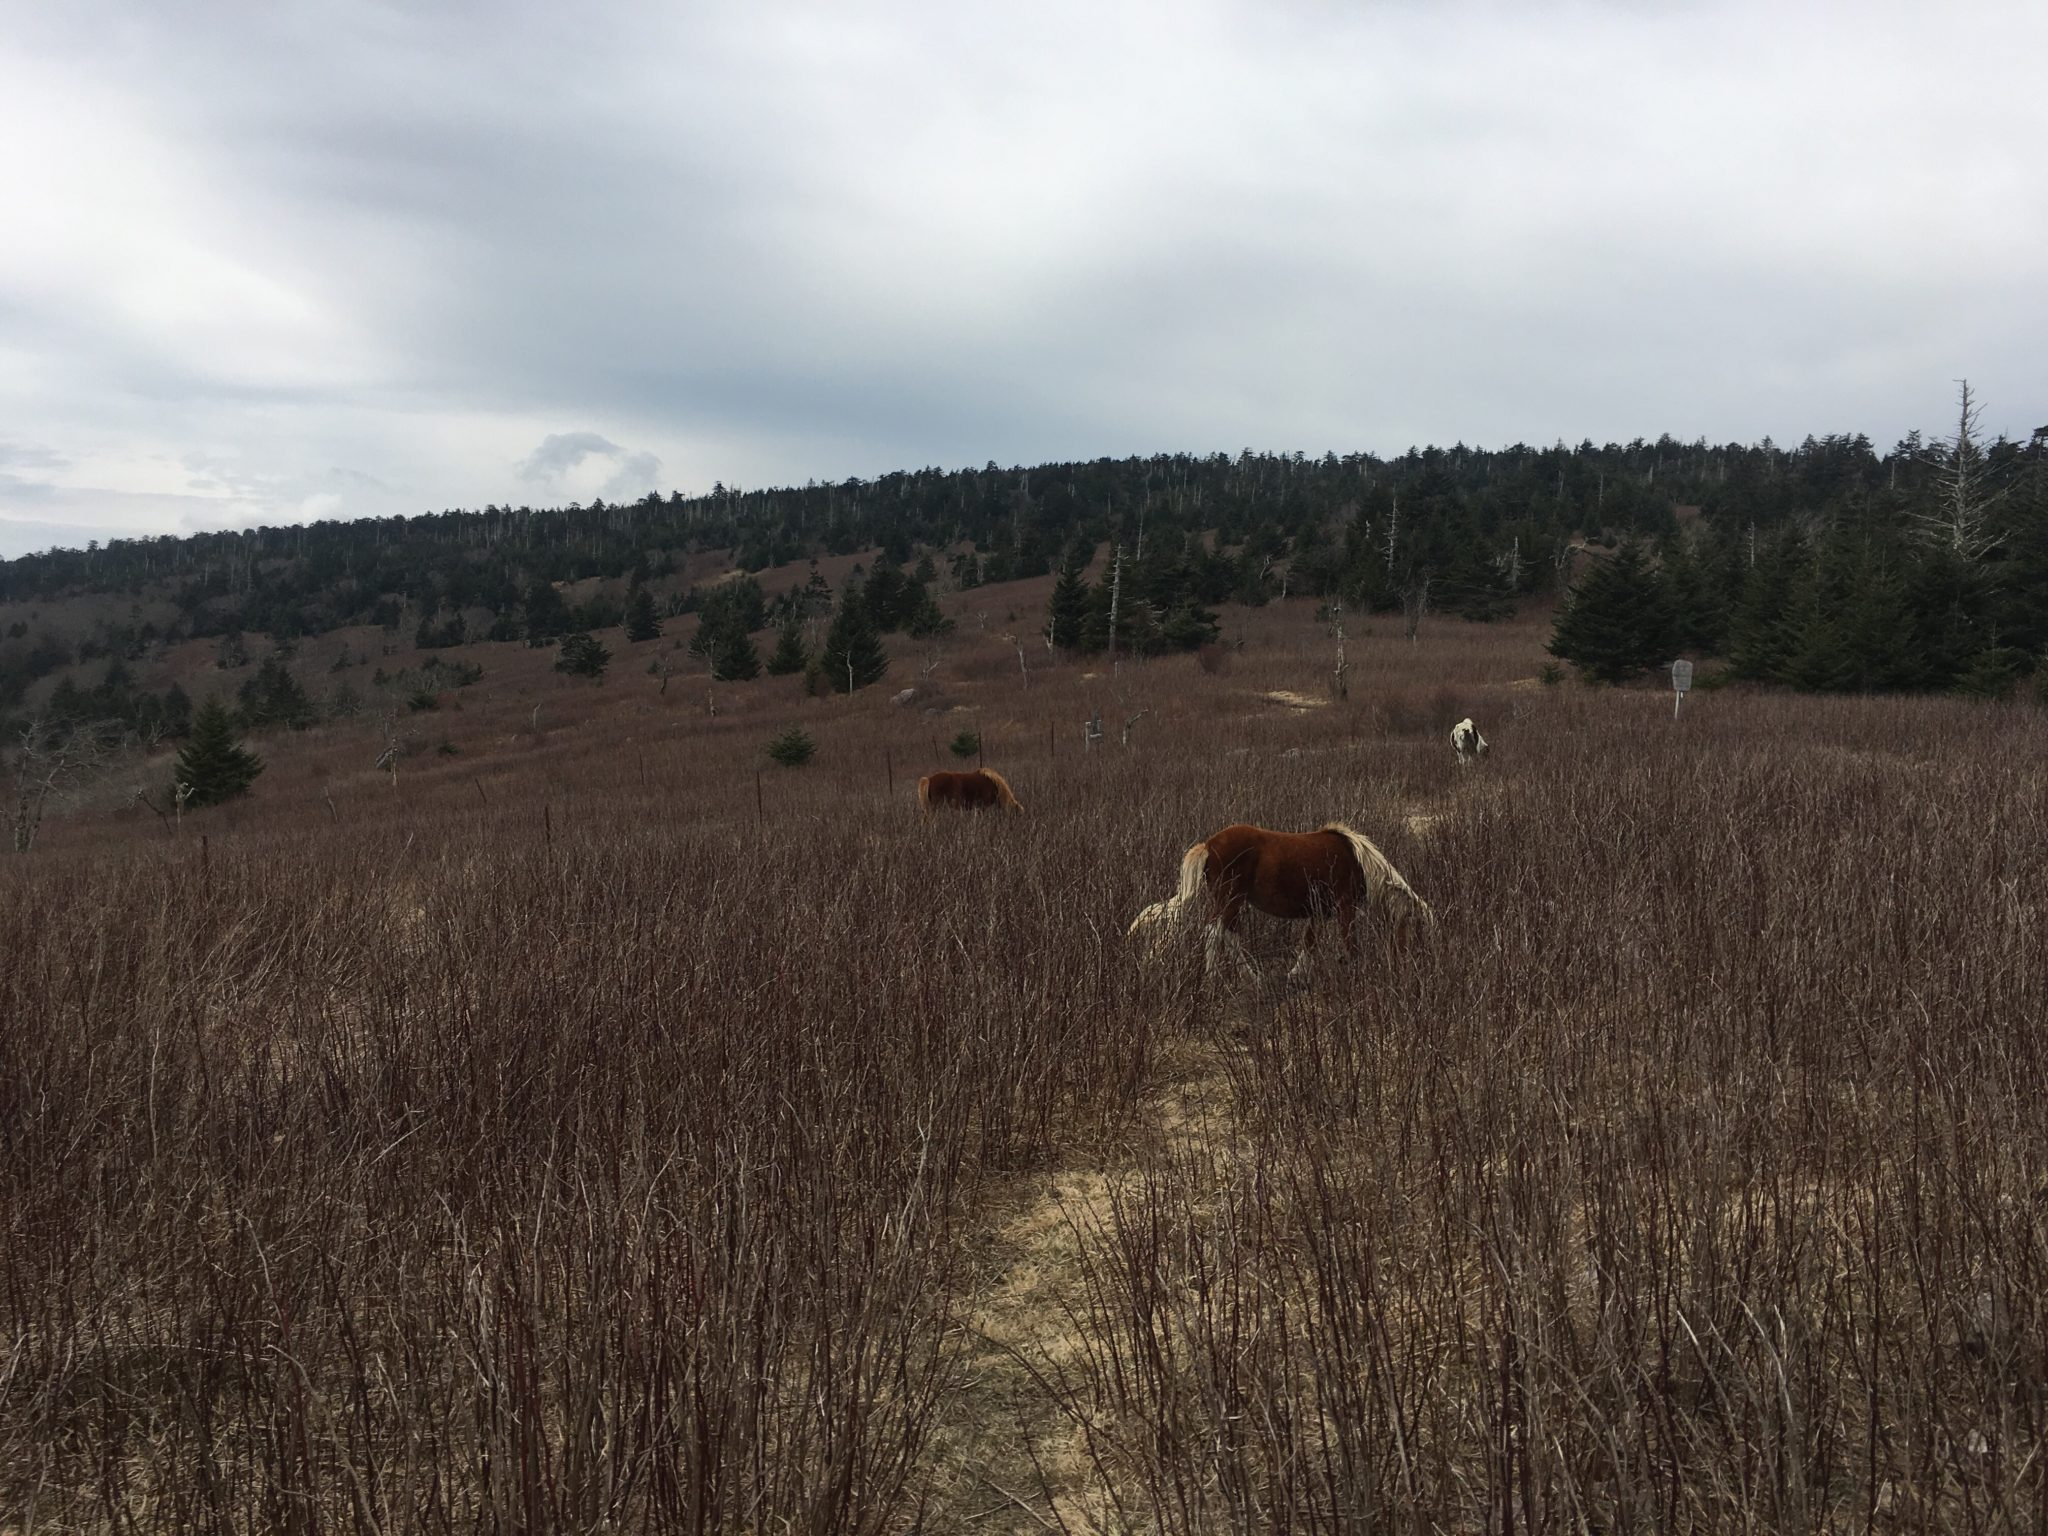 The ponies of the Grayson Highlands